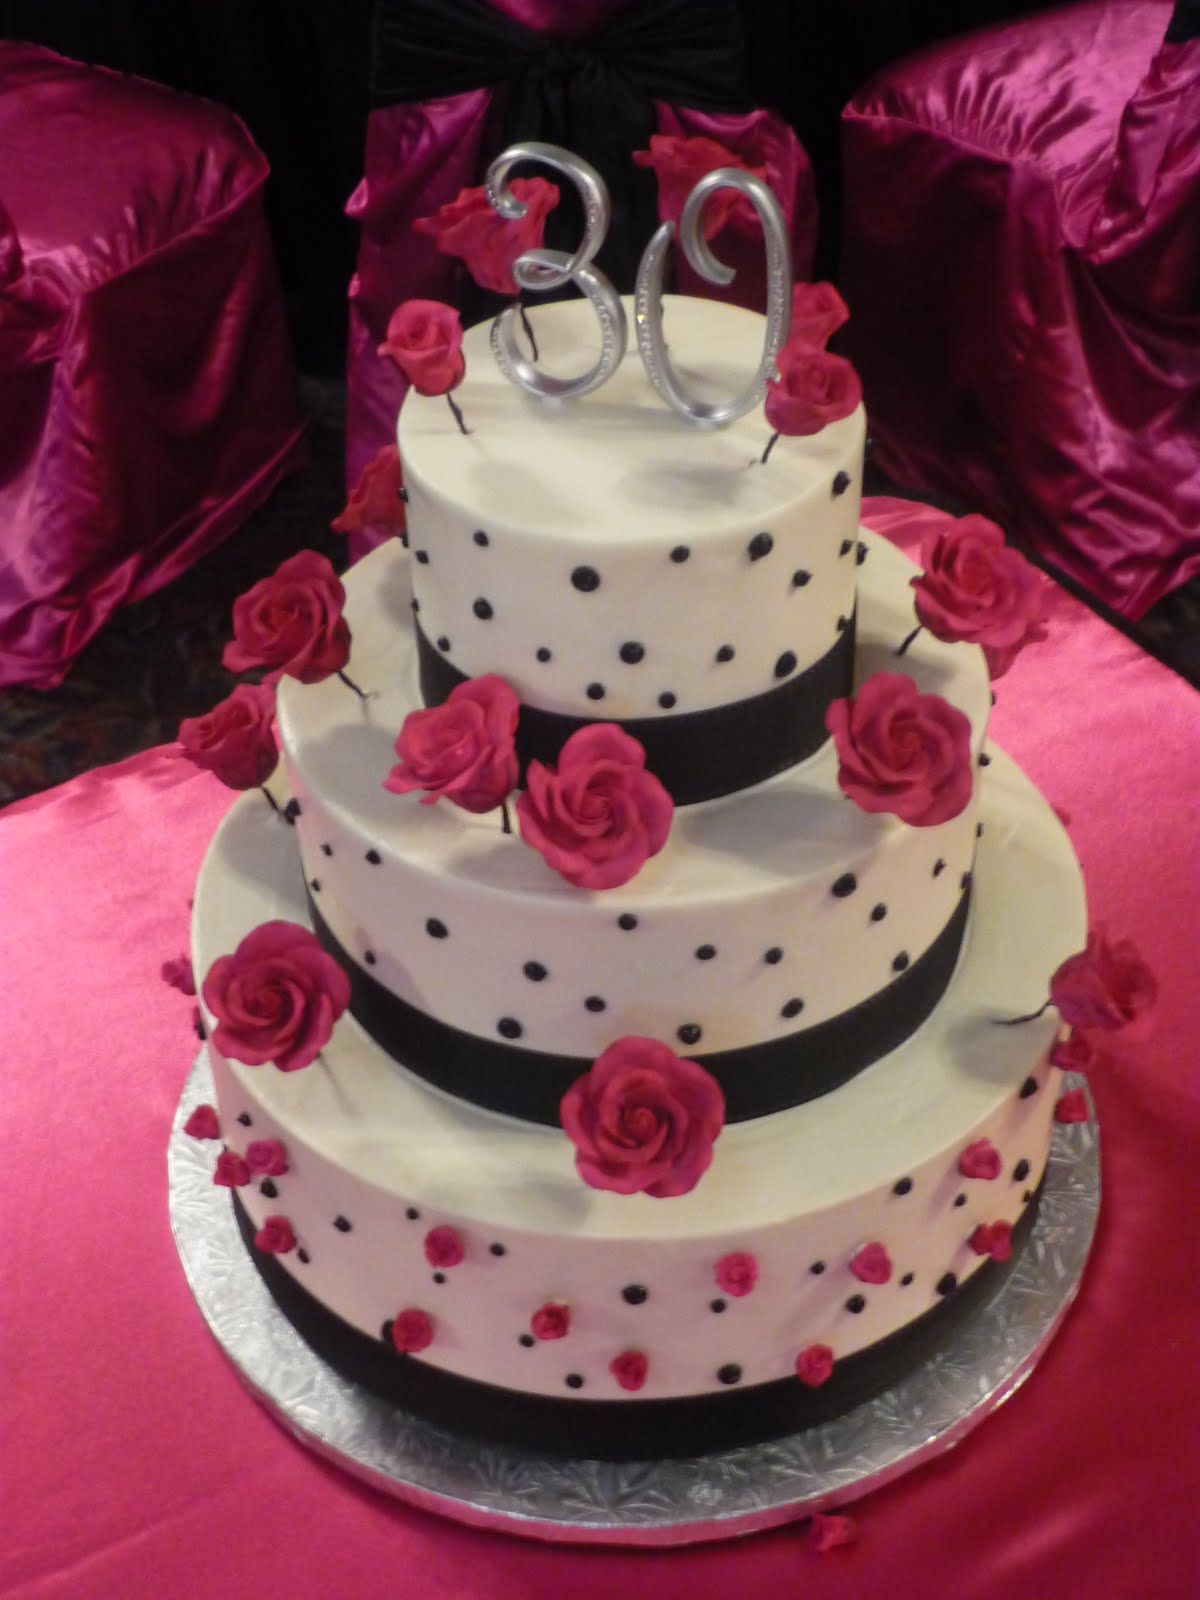 Sugar Roses In A Hot Raspberry Fushia Sit Above The Ledge Of Tiers Perched Black Wires 30 Monogram Topper Finishes Off Design